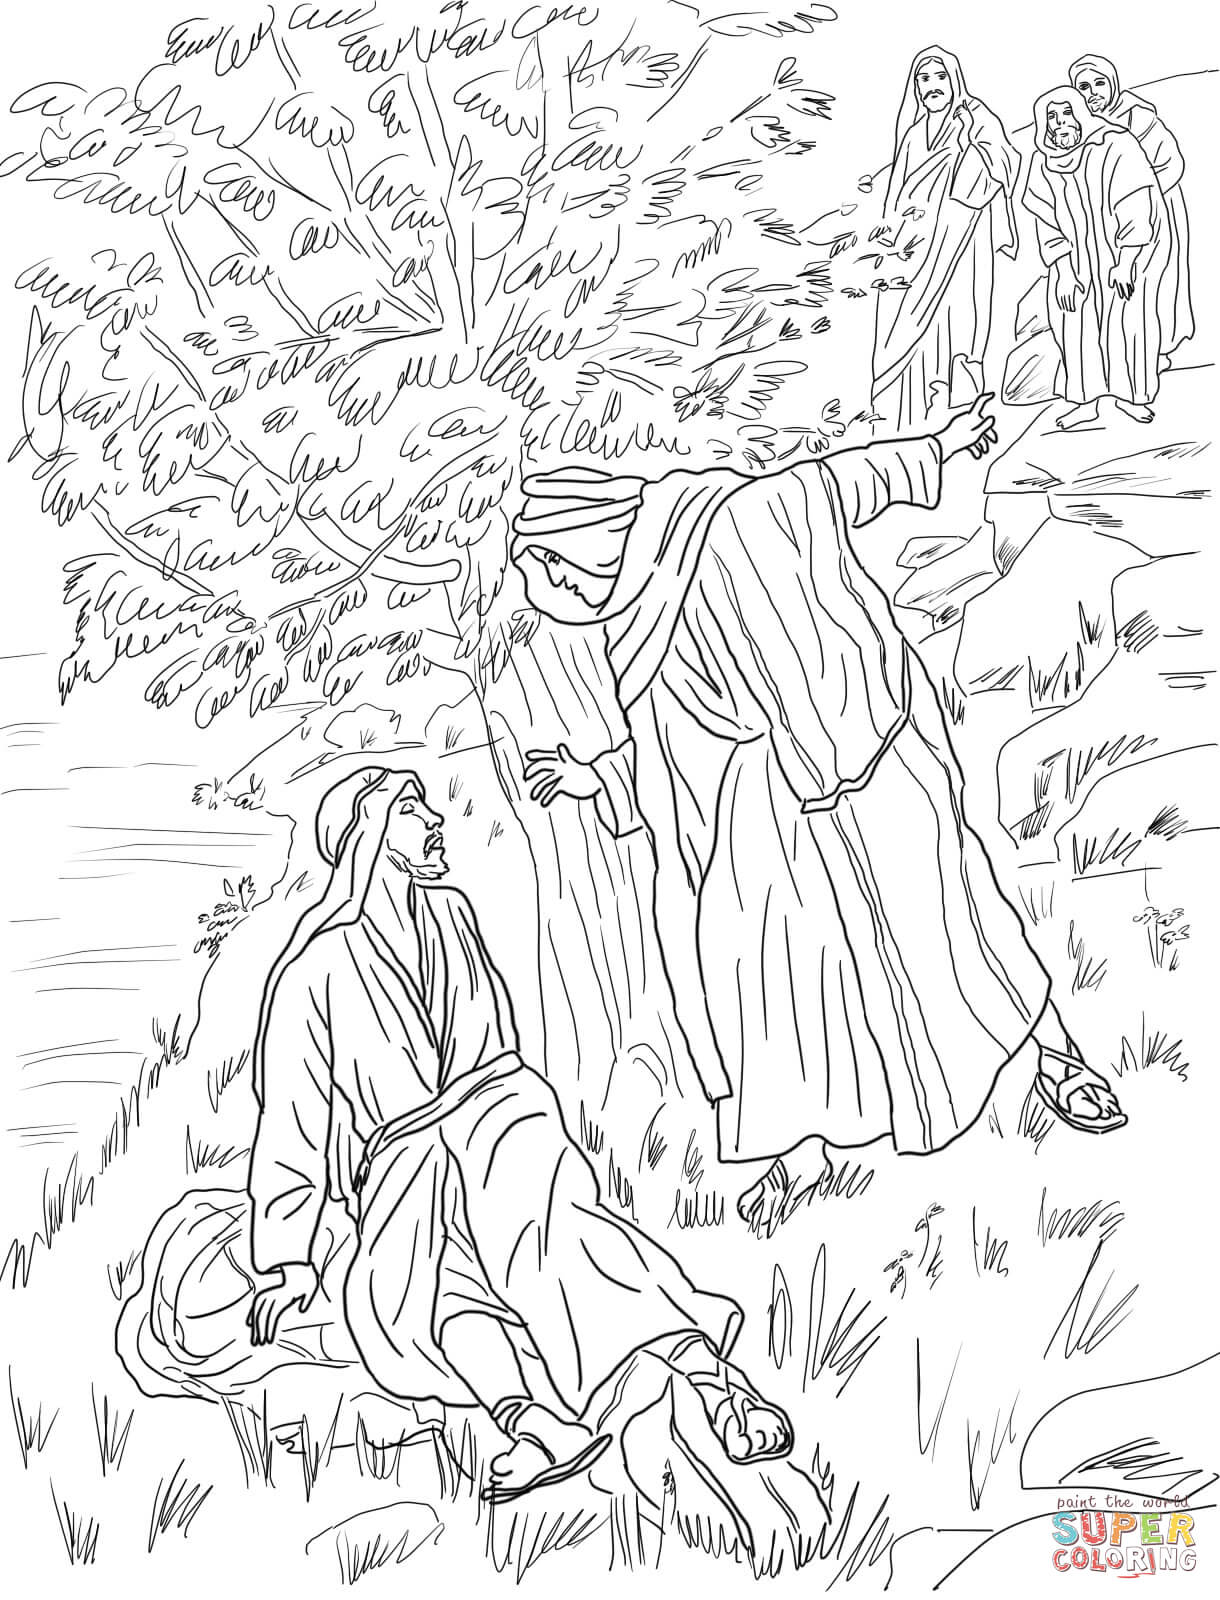 Transfiguration Coloring Page - Coloring Home